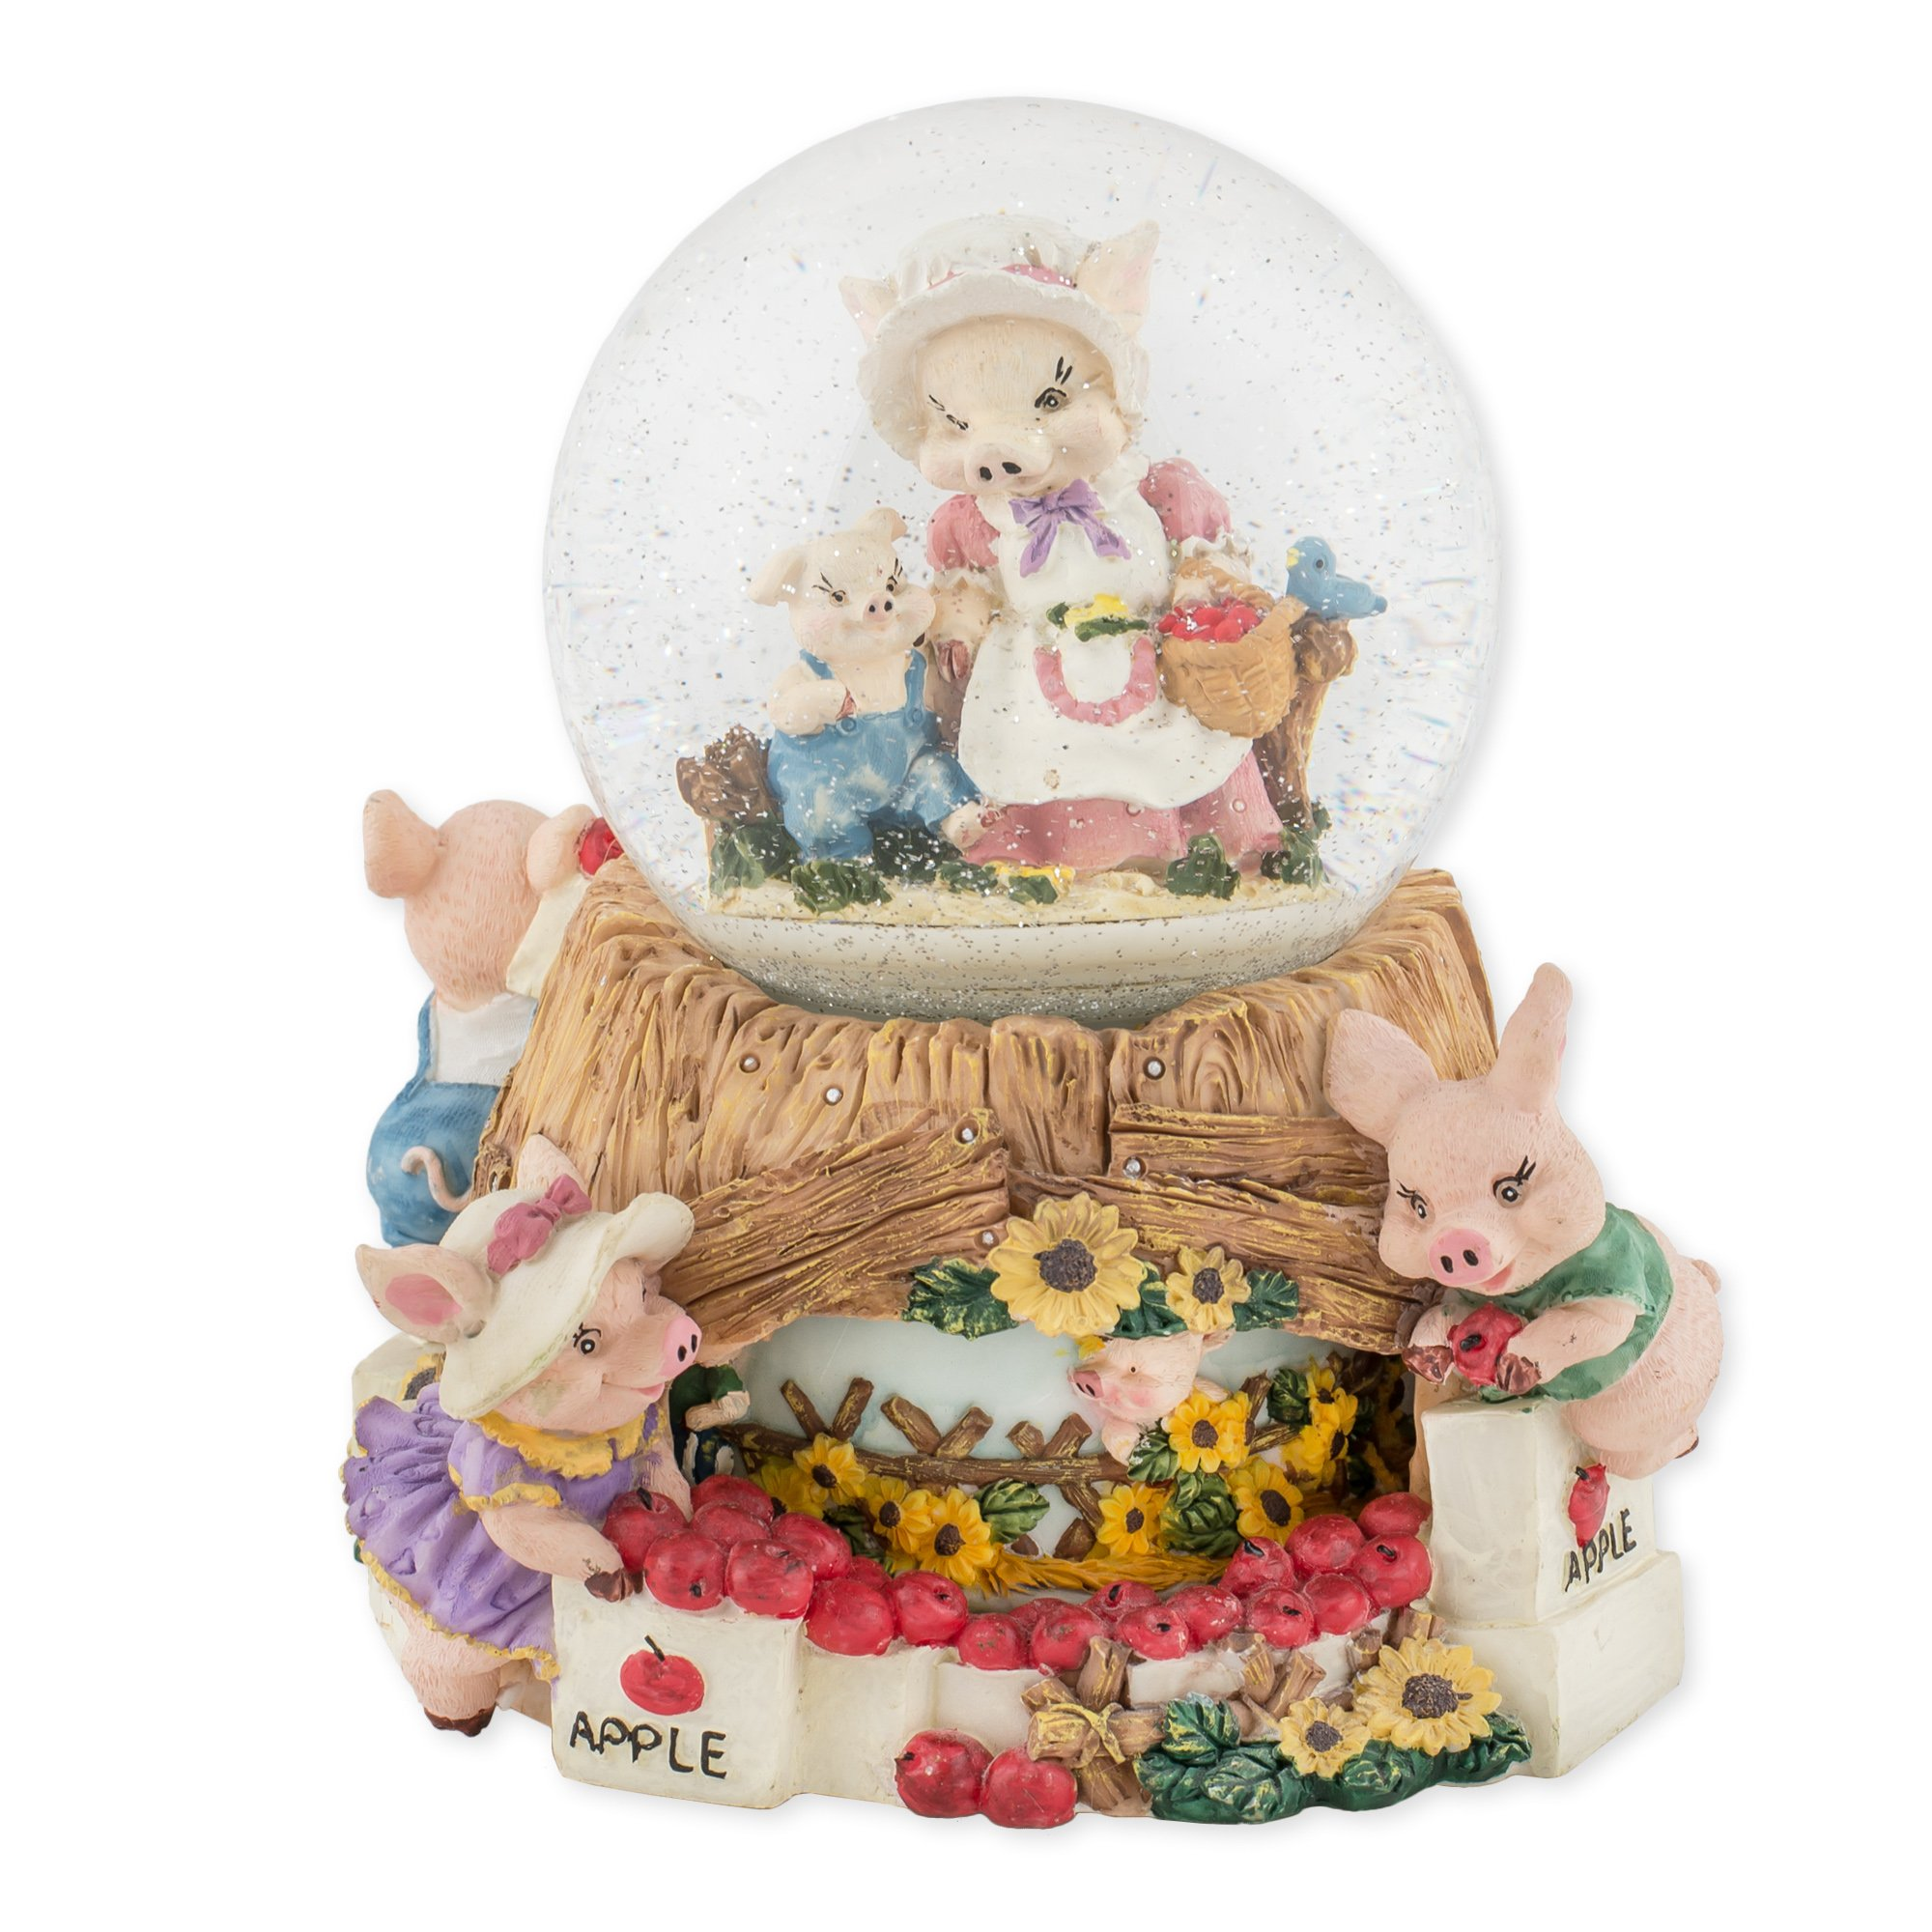 Momma Pig and Piglets 100mm Resin Water Globe Plays Tune Take Me Home, Country Roads